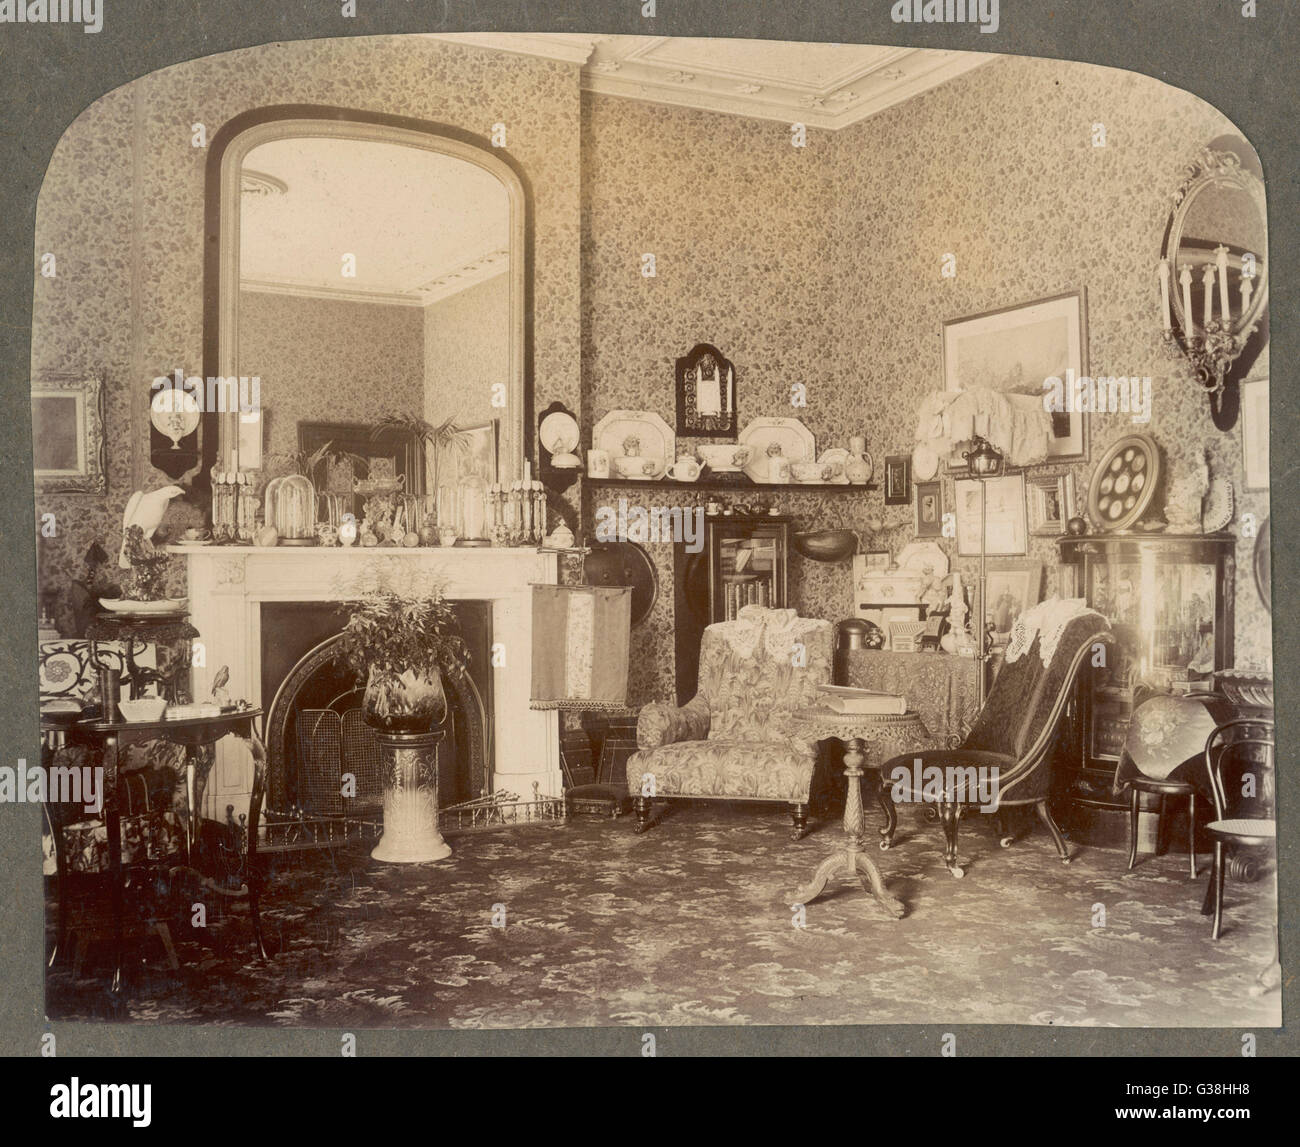 Victorian Sitting Rooms: A Victorian Sitting Room Date: Circa 1900 Stock Photo